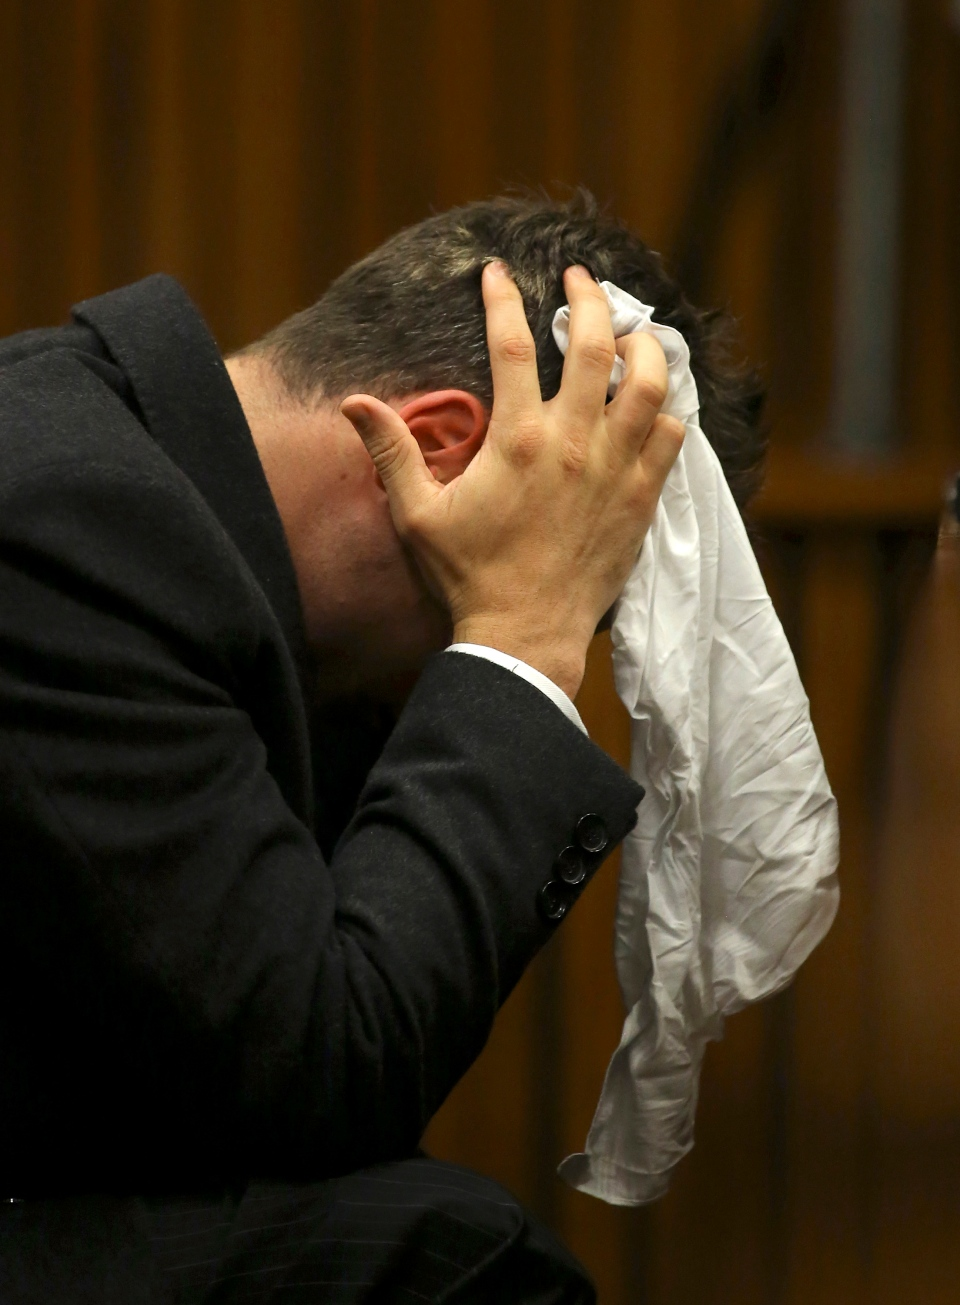 Oscar Pistorius covers his head with a handkerchief after he had reached for a bucket at his feet while listening to cross questioning about the events surrounding the shooting death of his girlfriend Reeva Steenkamp, in his second week in court during his trial in Pretoria, South Africa, Monday, March 10, 2014. (AP / Siphiwe Sibeko)